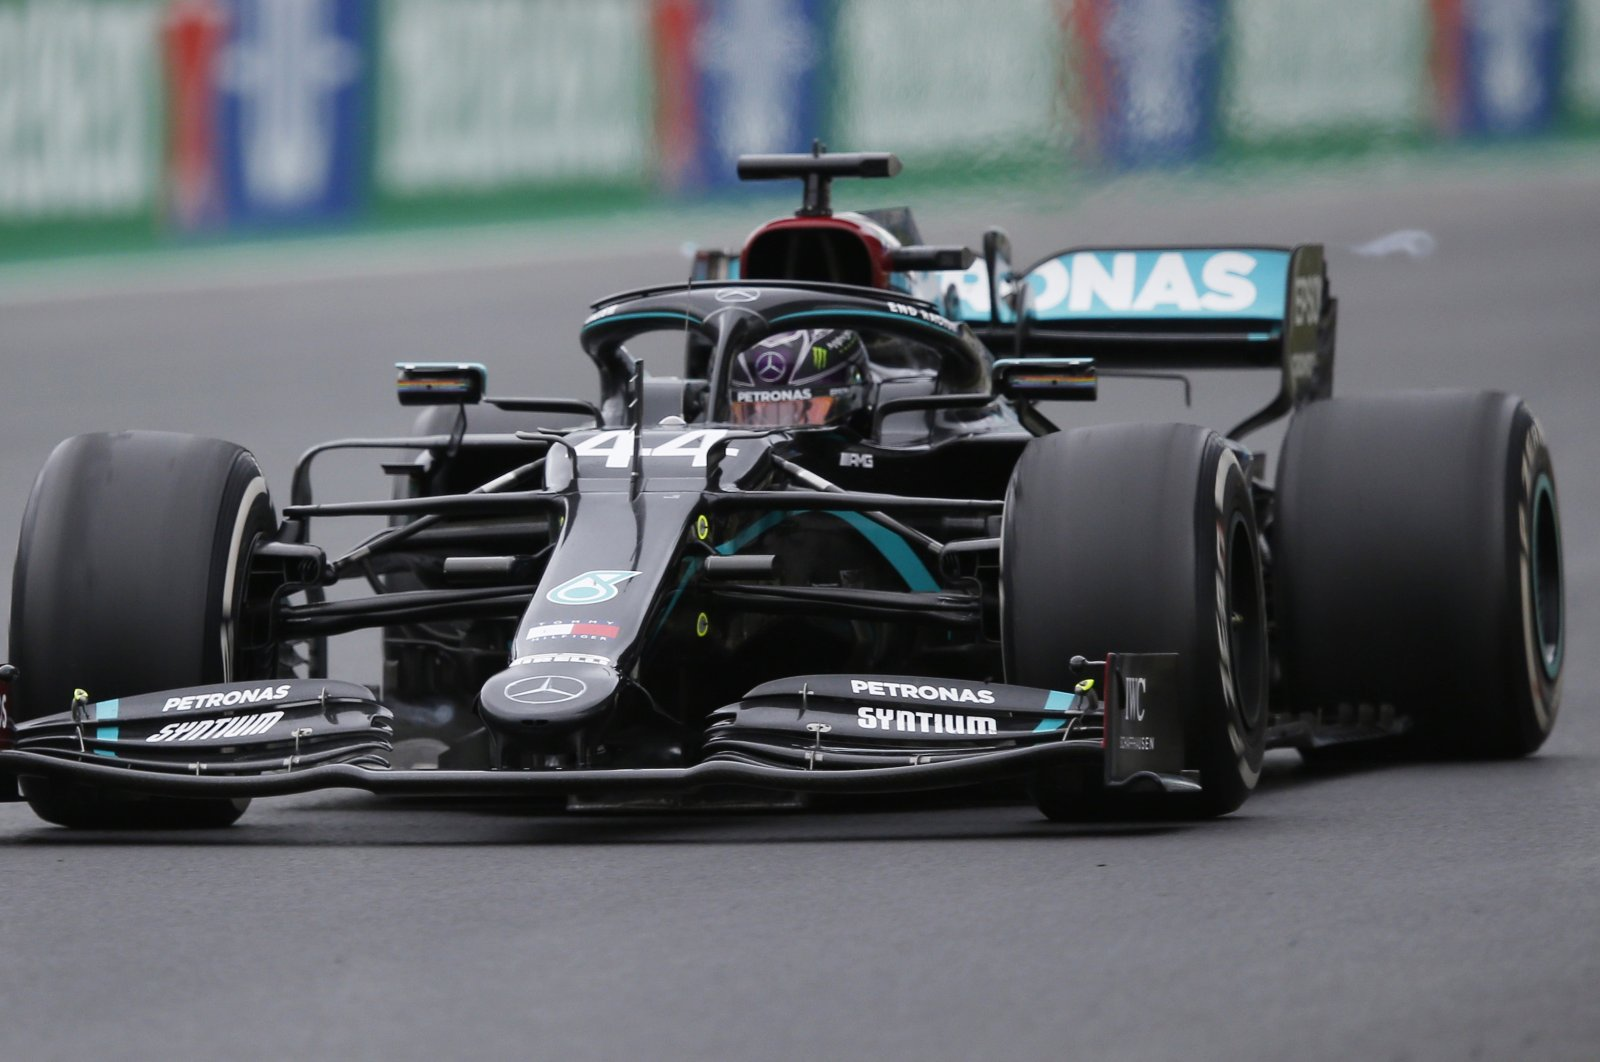 Mercedes driver Lewis Hamilton in action during the F1 Portuguese Grand Prix, in Portimao, Portugal, Oct. 25, 2020. (Reuters Photo)